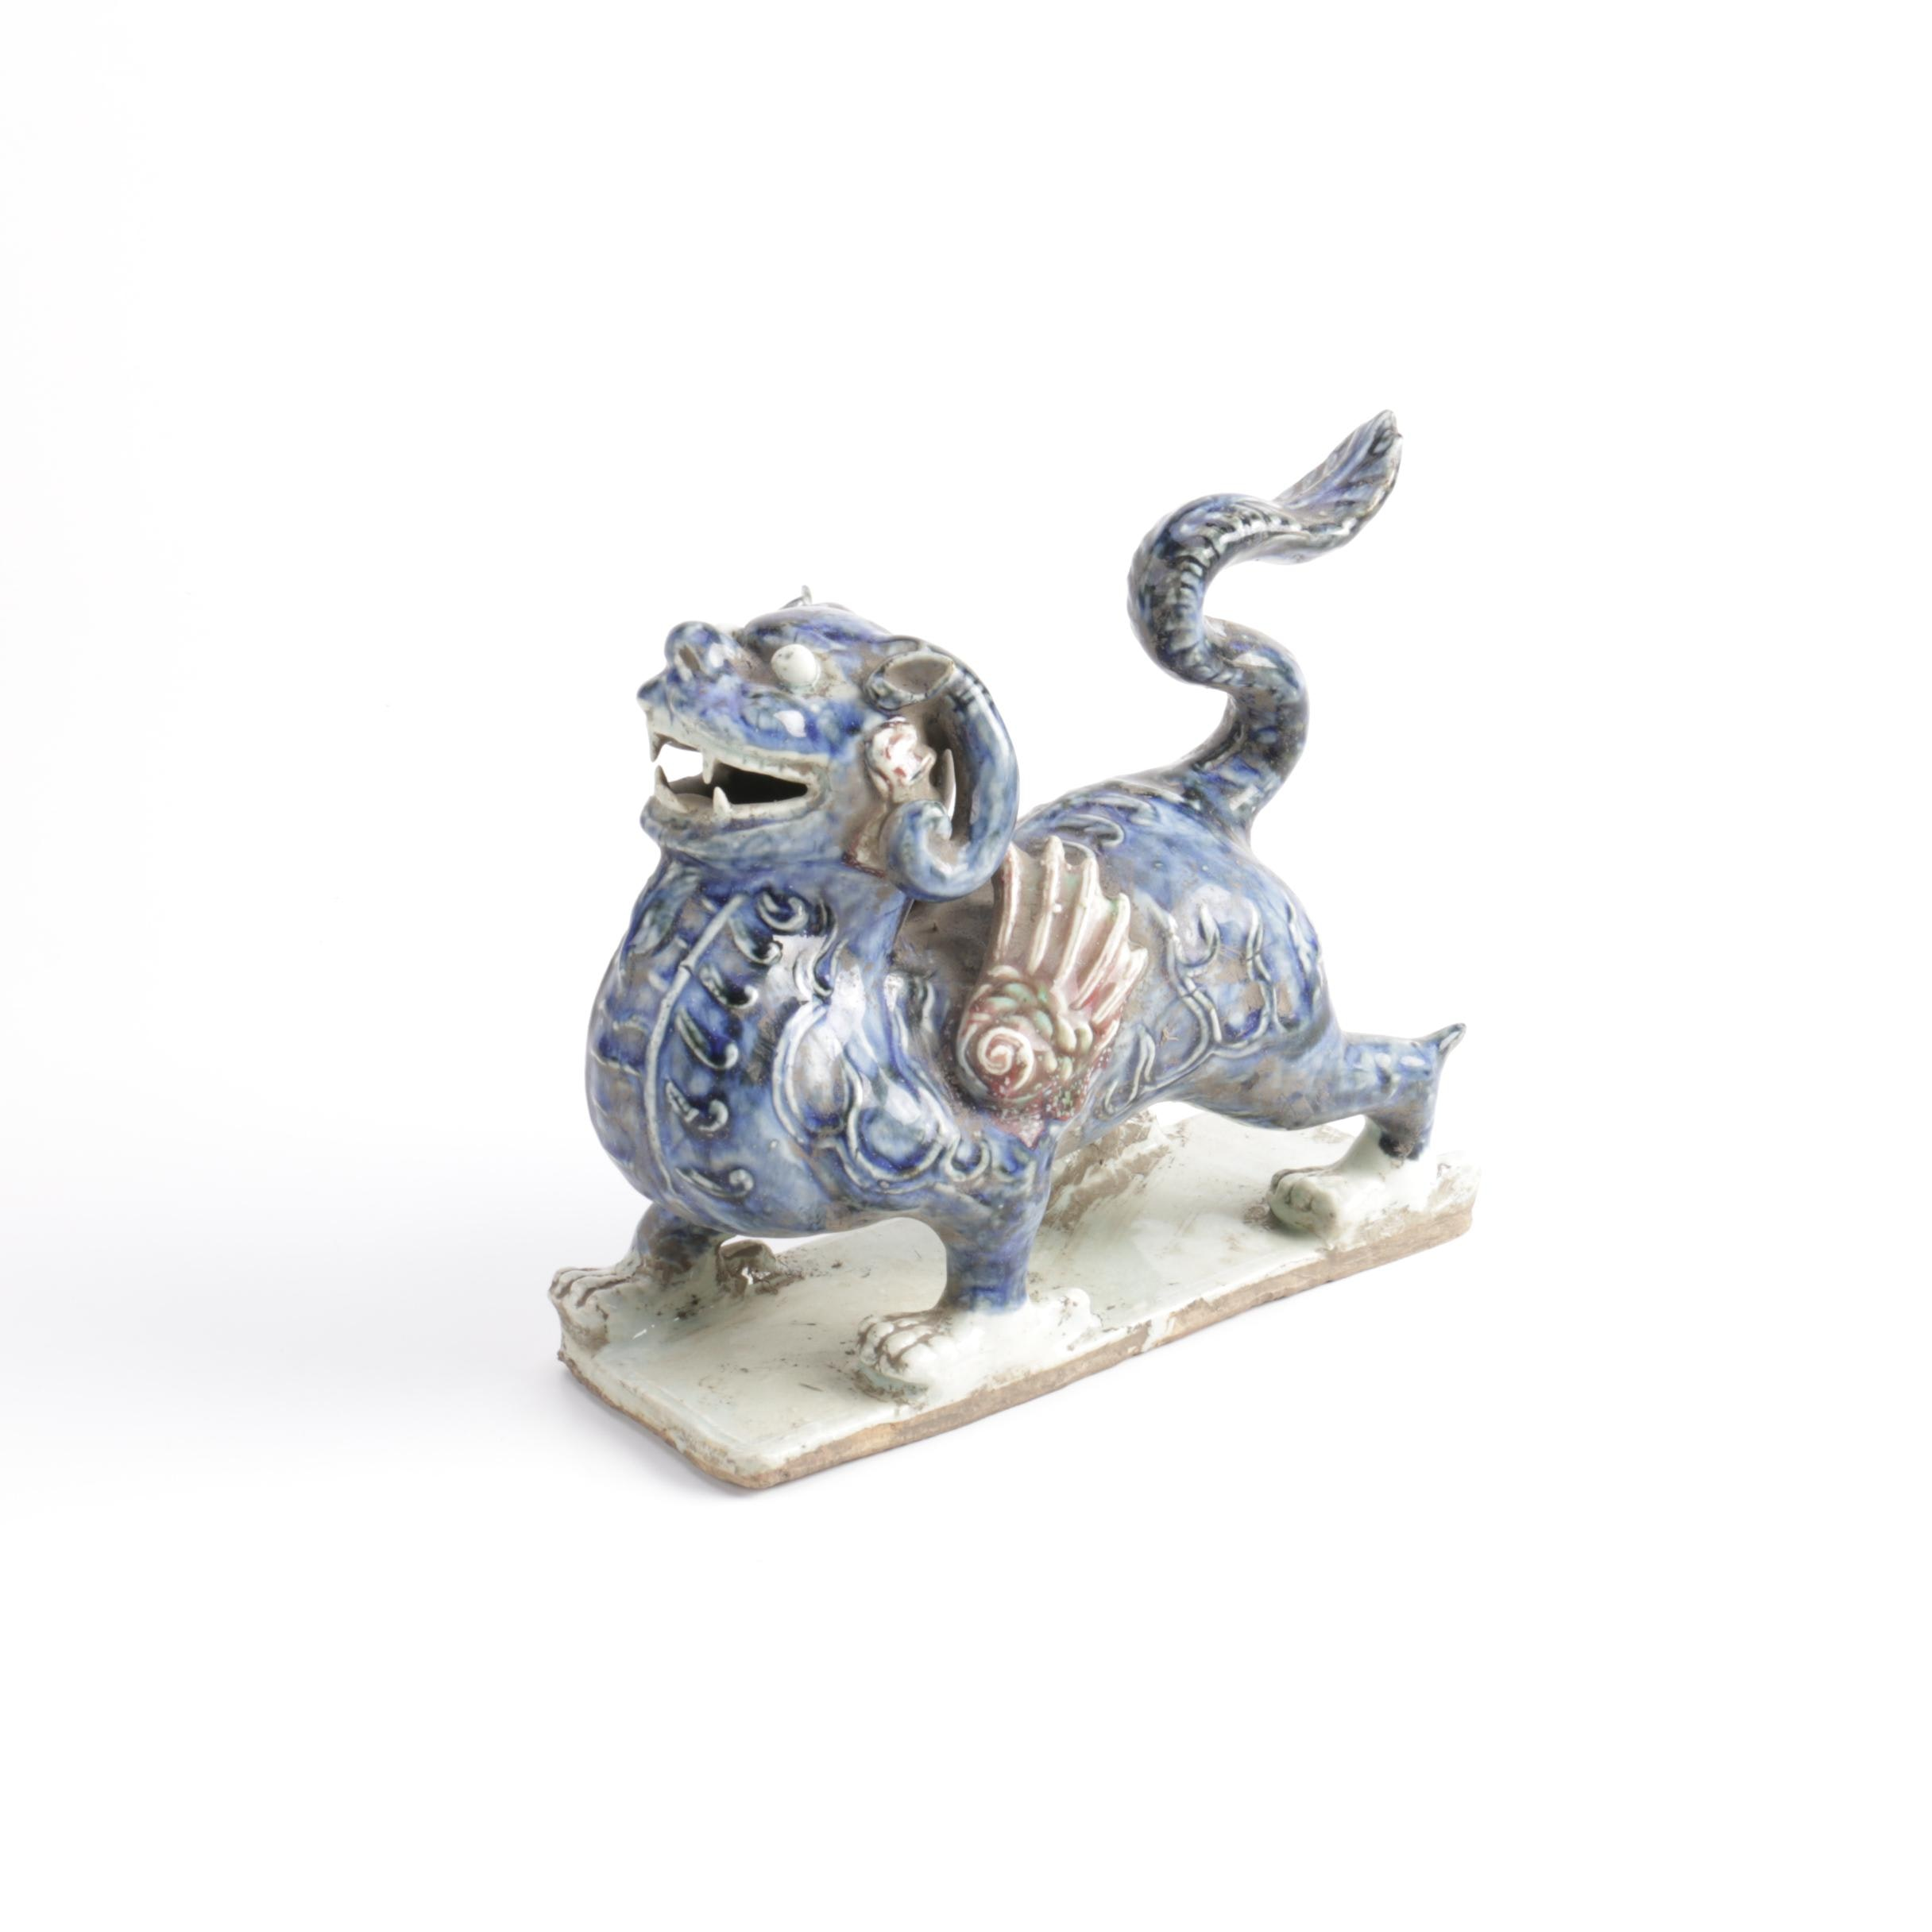 Chinese Hand-Painted Blue Winged Dragon Ceramic Figurine